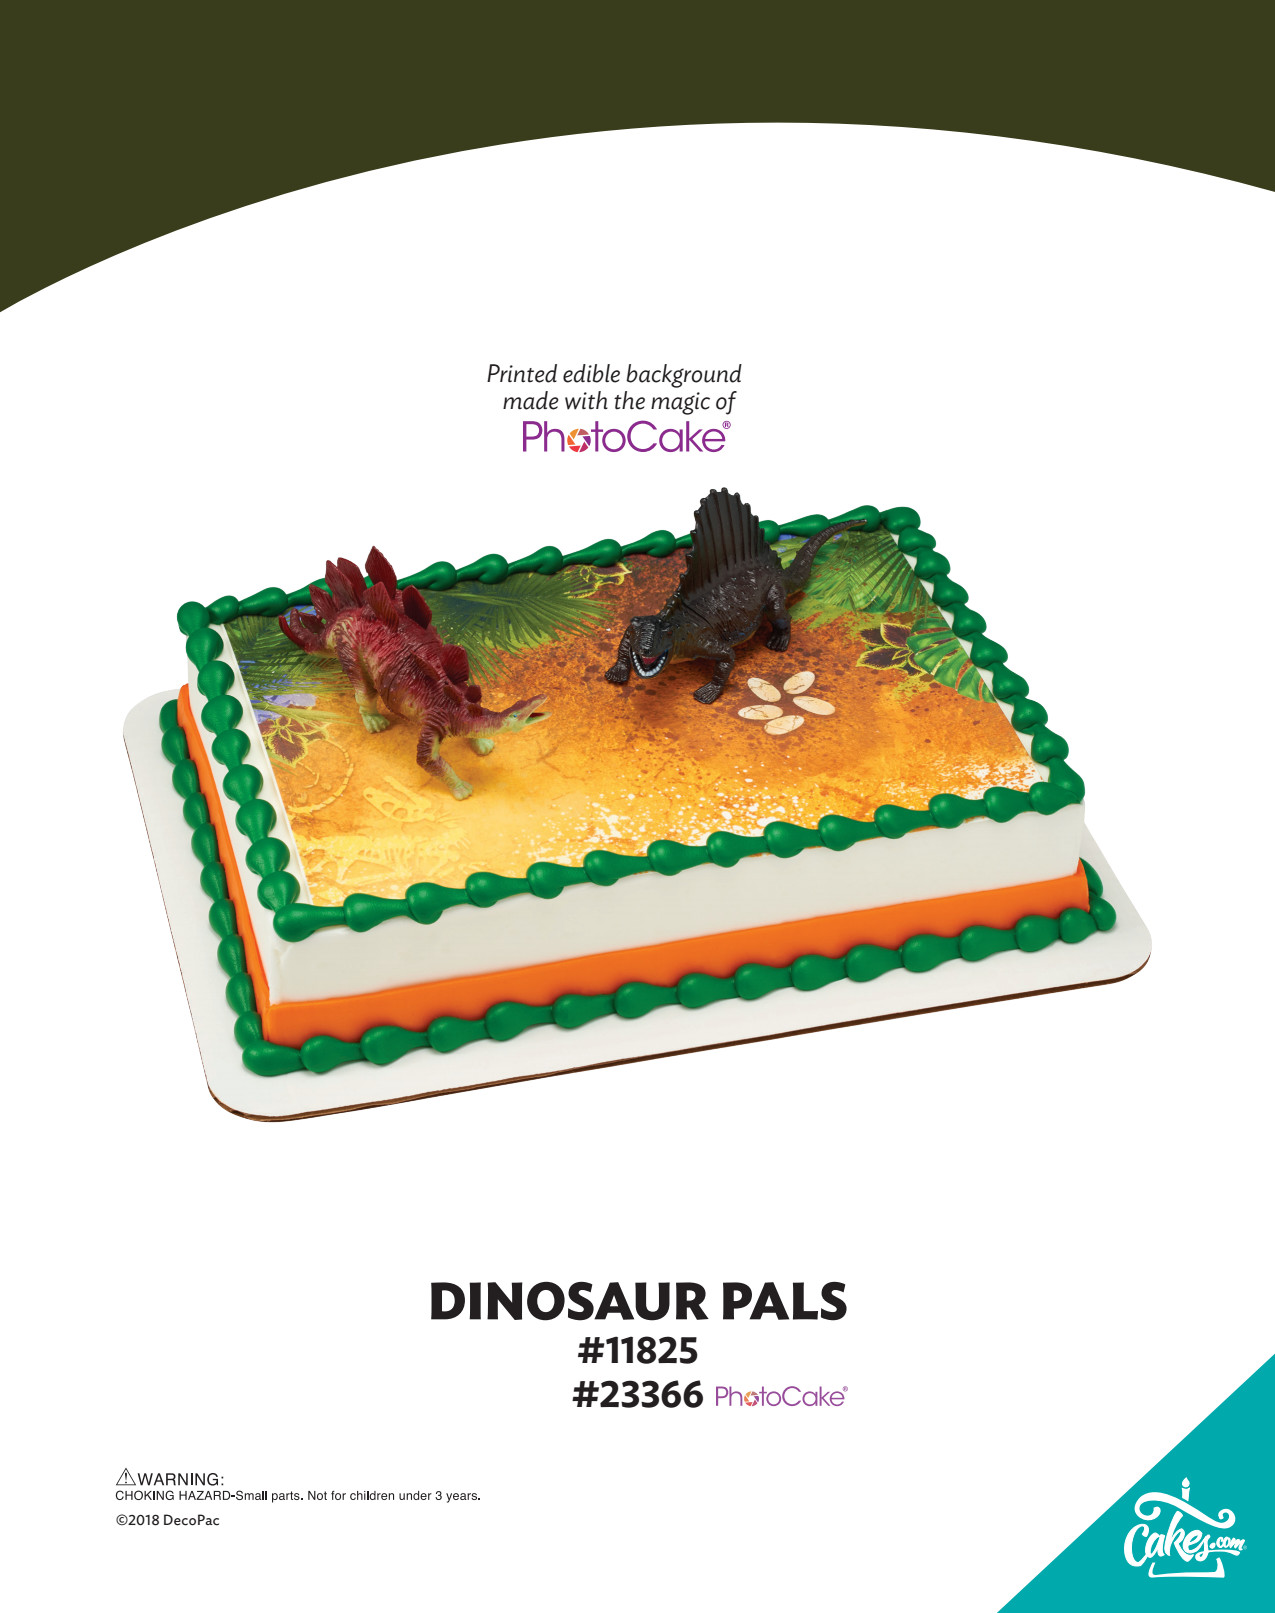 Dinosaur Pals Decoset 174 The Magic Of Cakes 174 Page Decopac